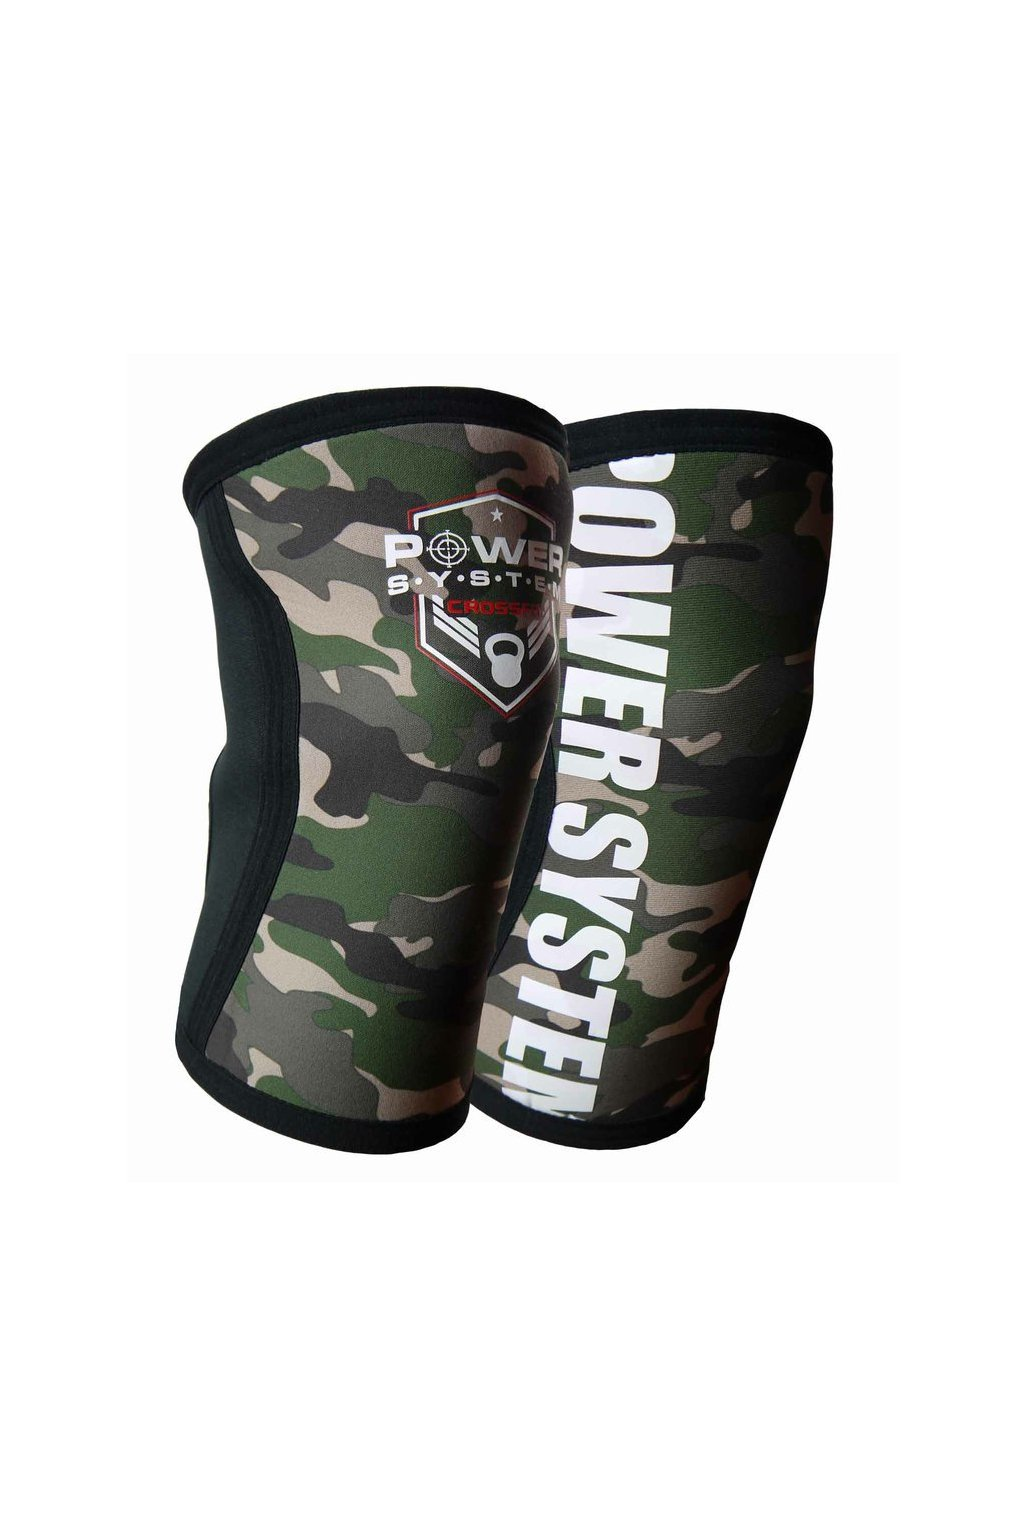 KNEE SLEEVES PAIR CAMO